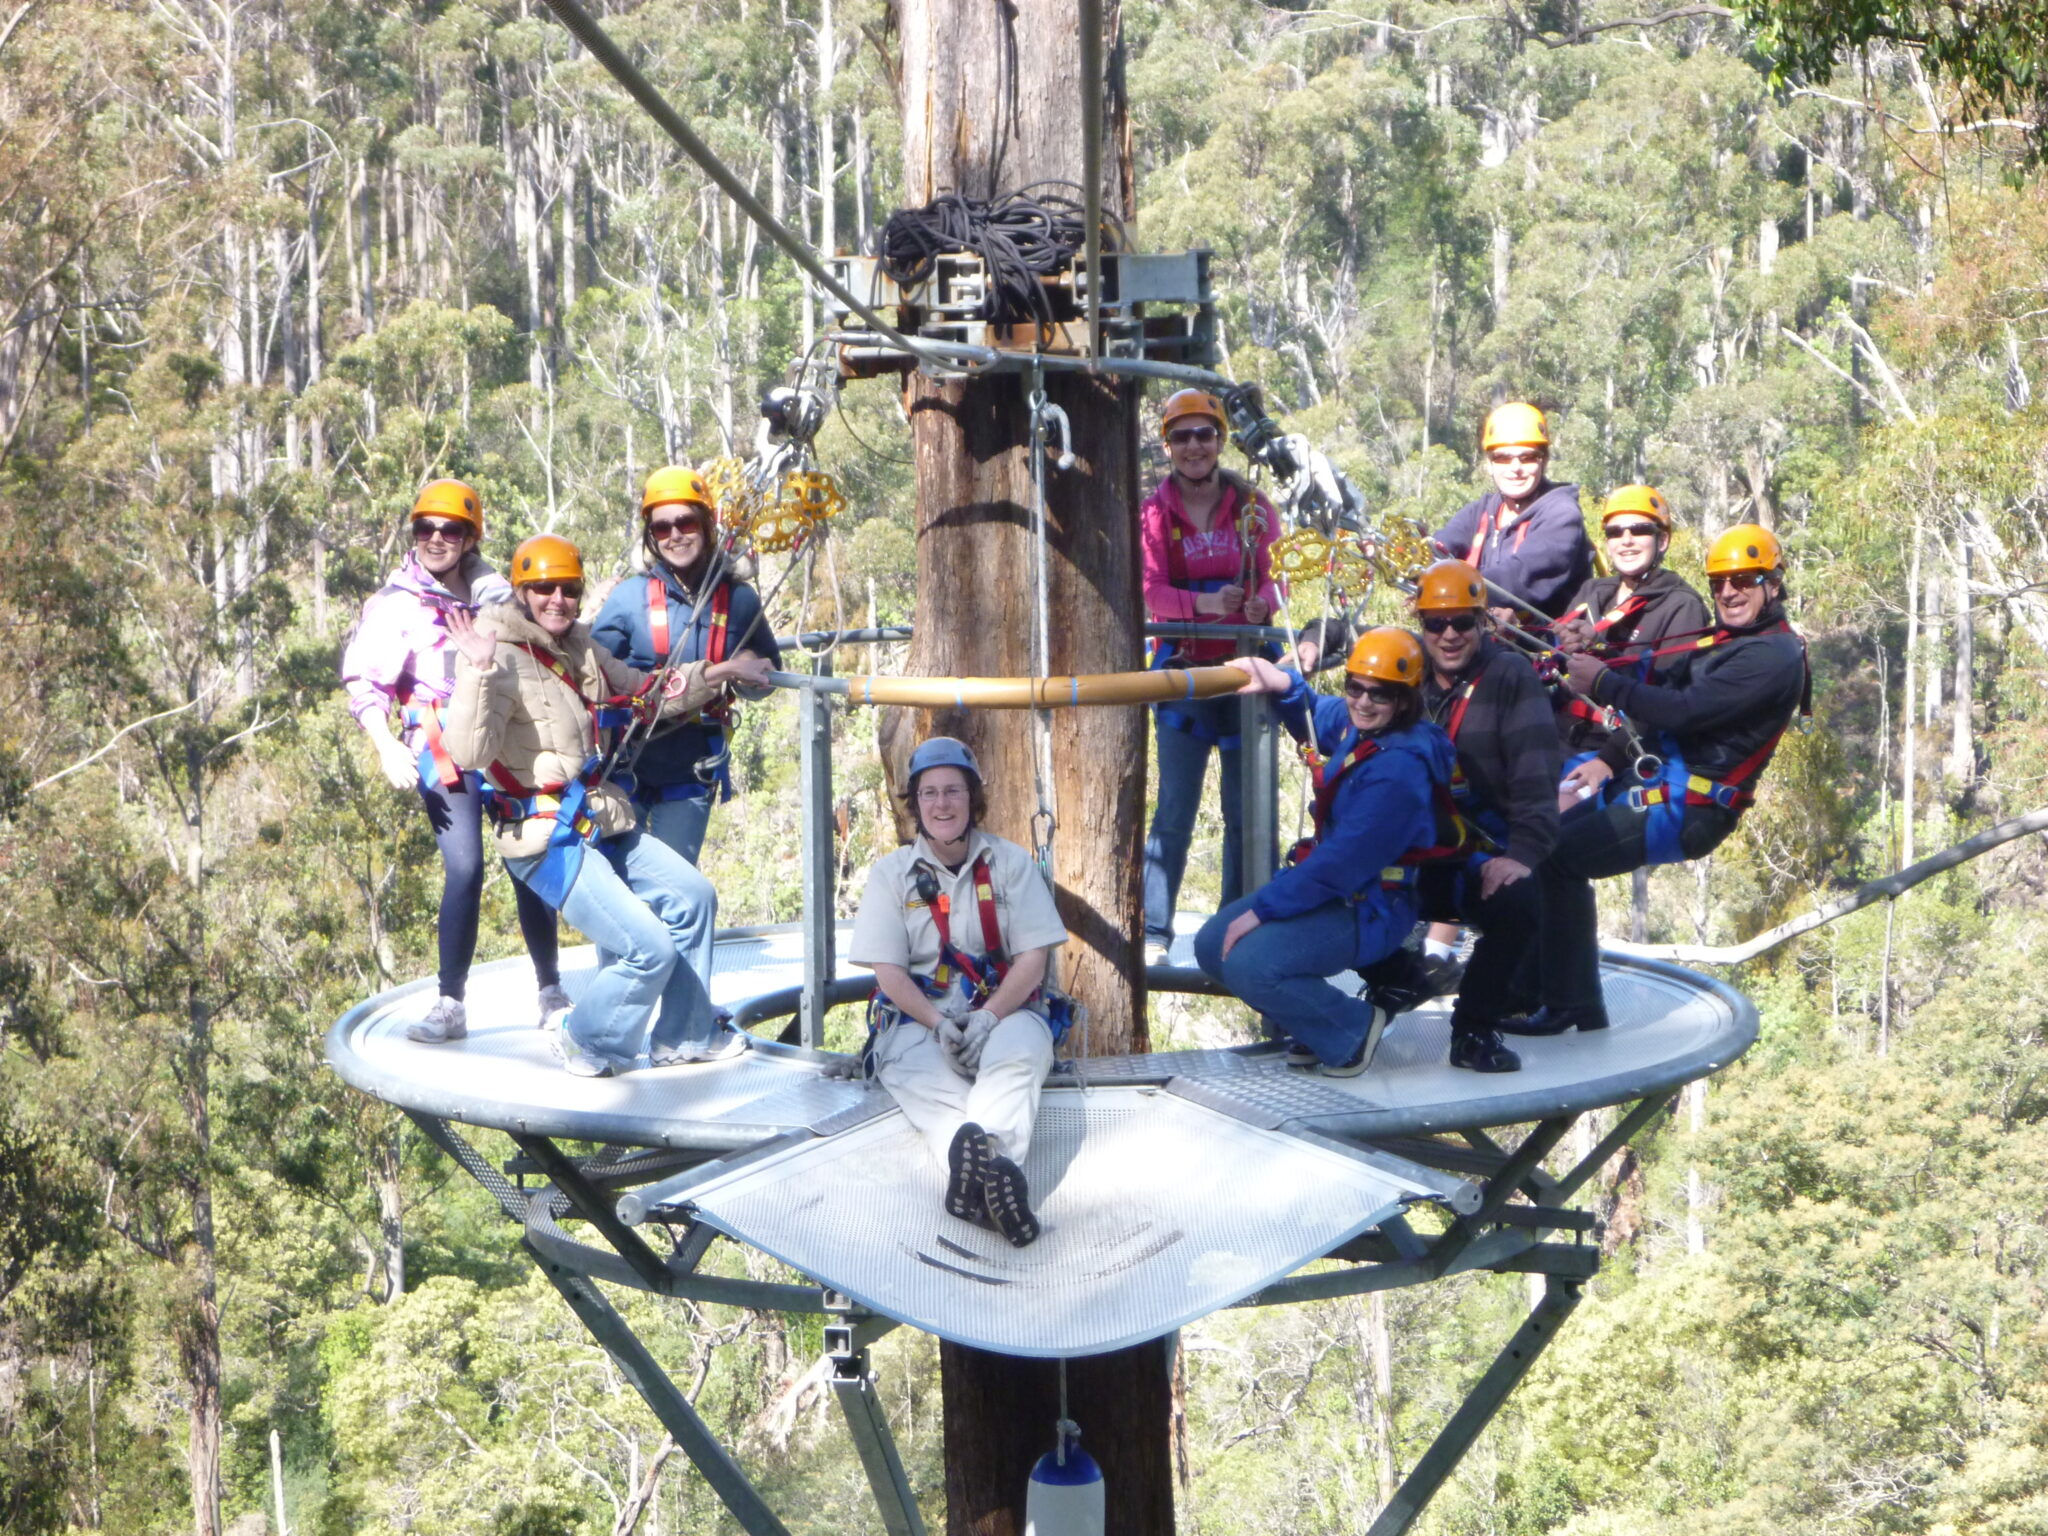 Group photo at Hollybank Treetops Adventure